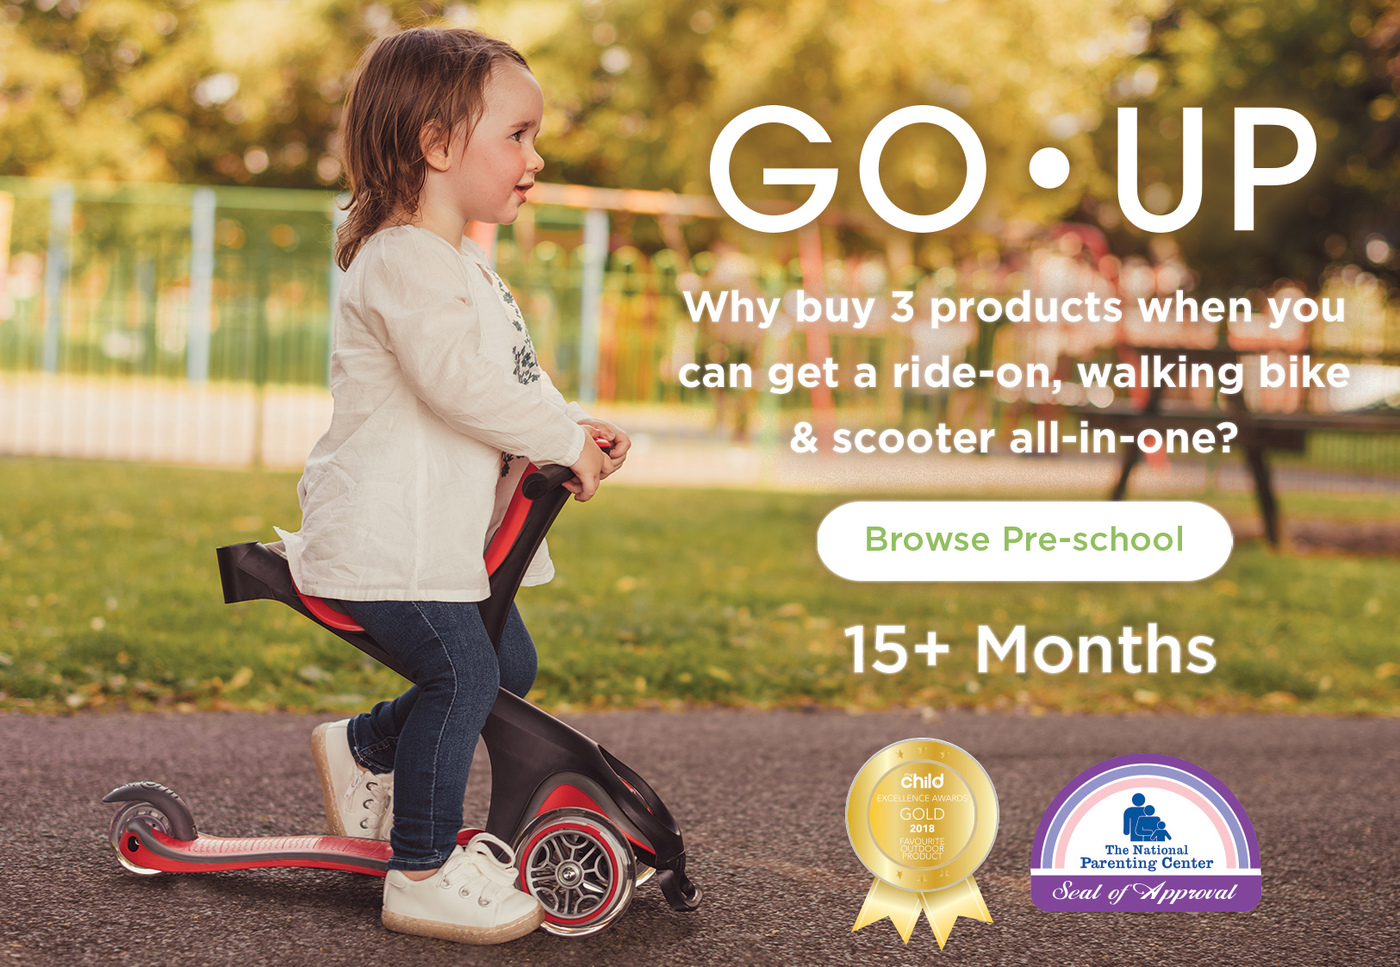 Why buy 3 products when you can get ride-on, walking bike & scooter all-in-one?